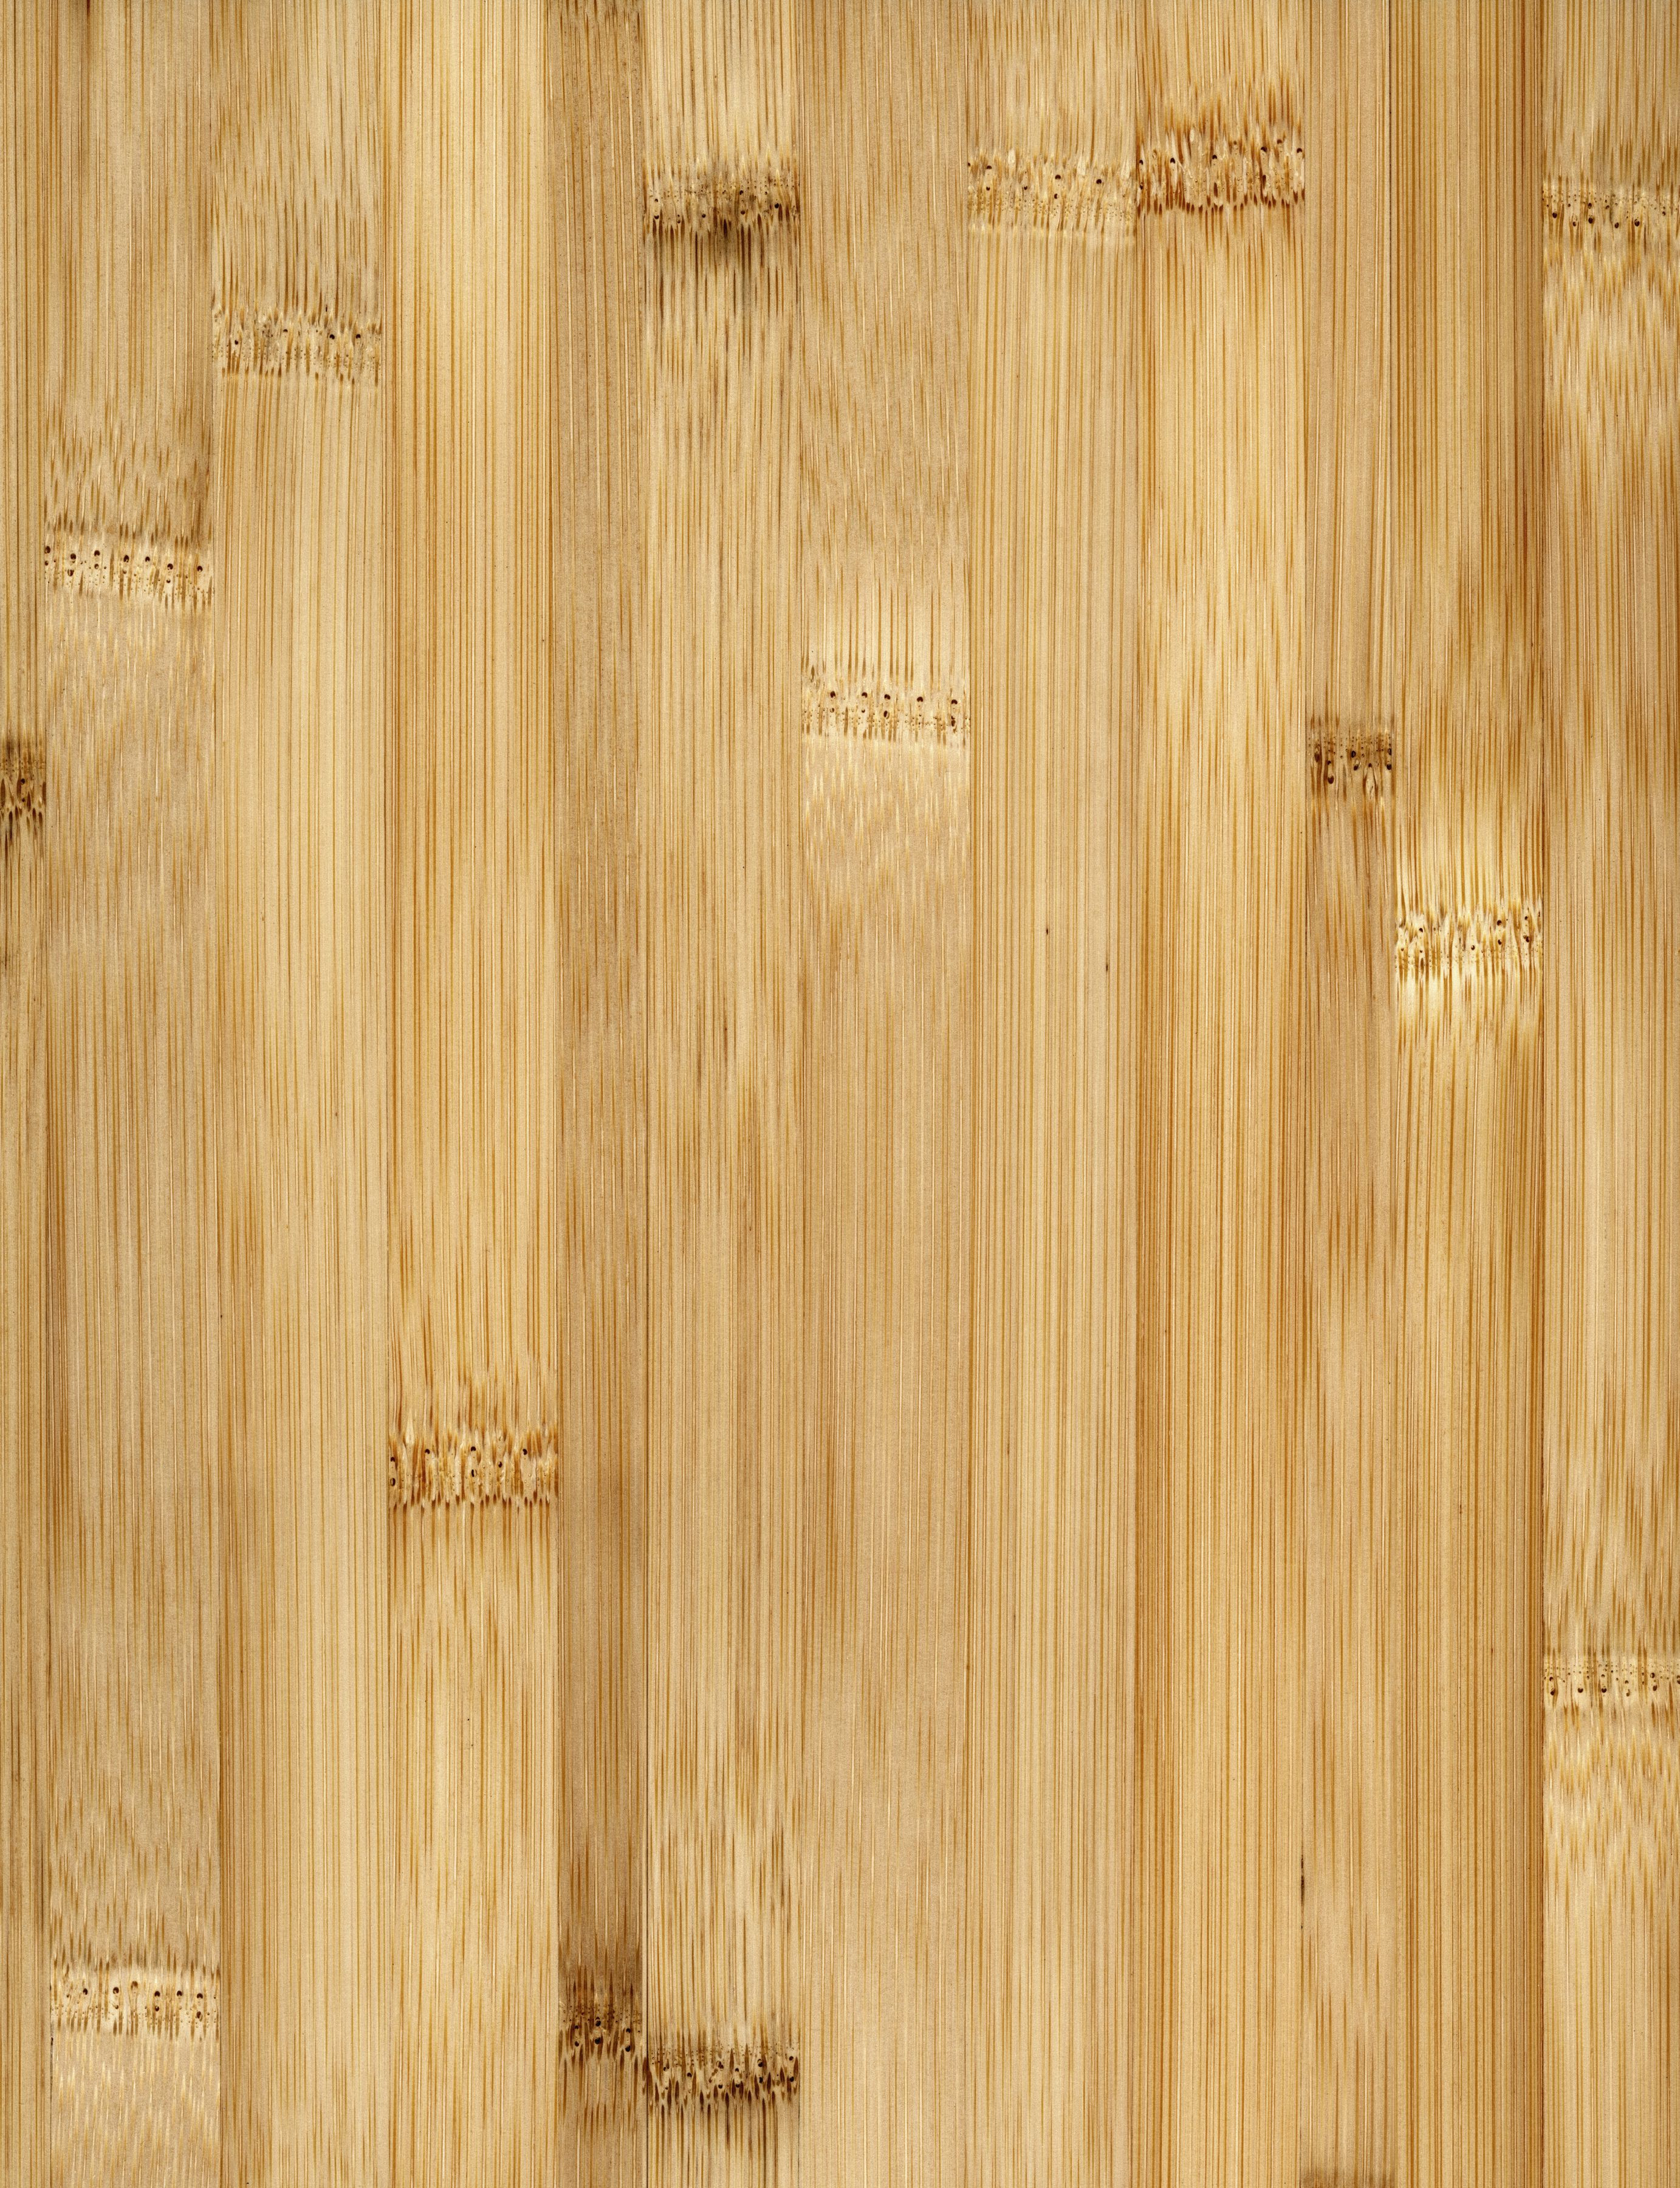 25 Unique Hardwood Floor Types Hardness 2021 free download hardwood floor types hardness of bamboo flooring the basics pertaining to bamboo floor full frame 200266305 001 588805c03df78c2ccdd4c706